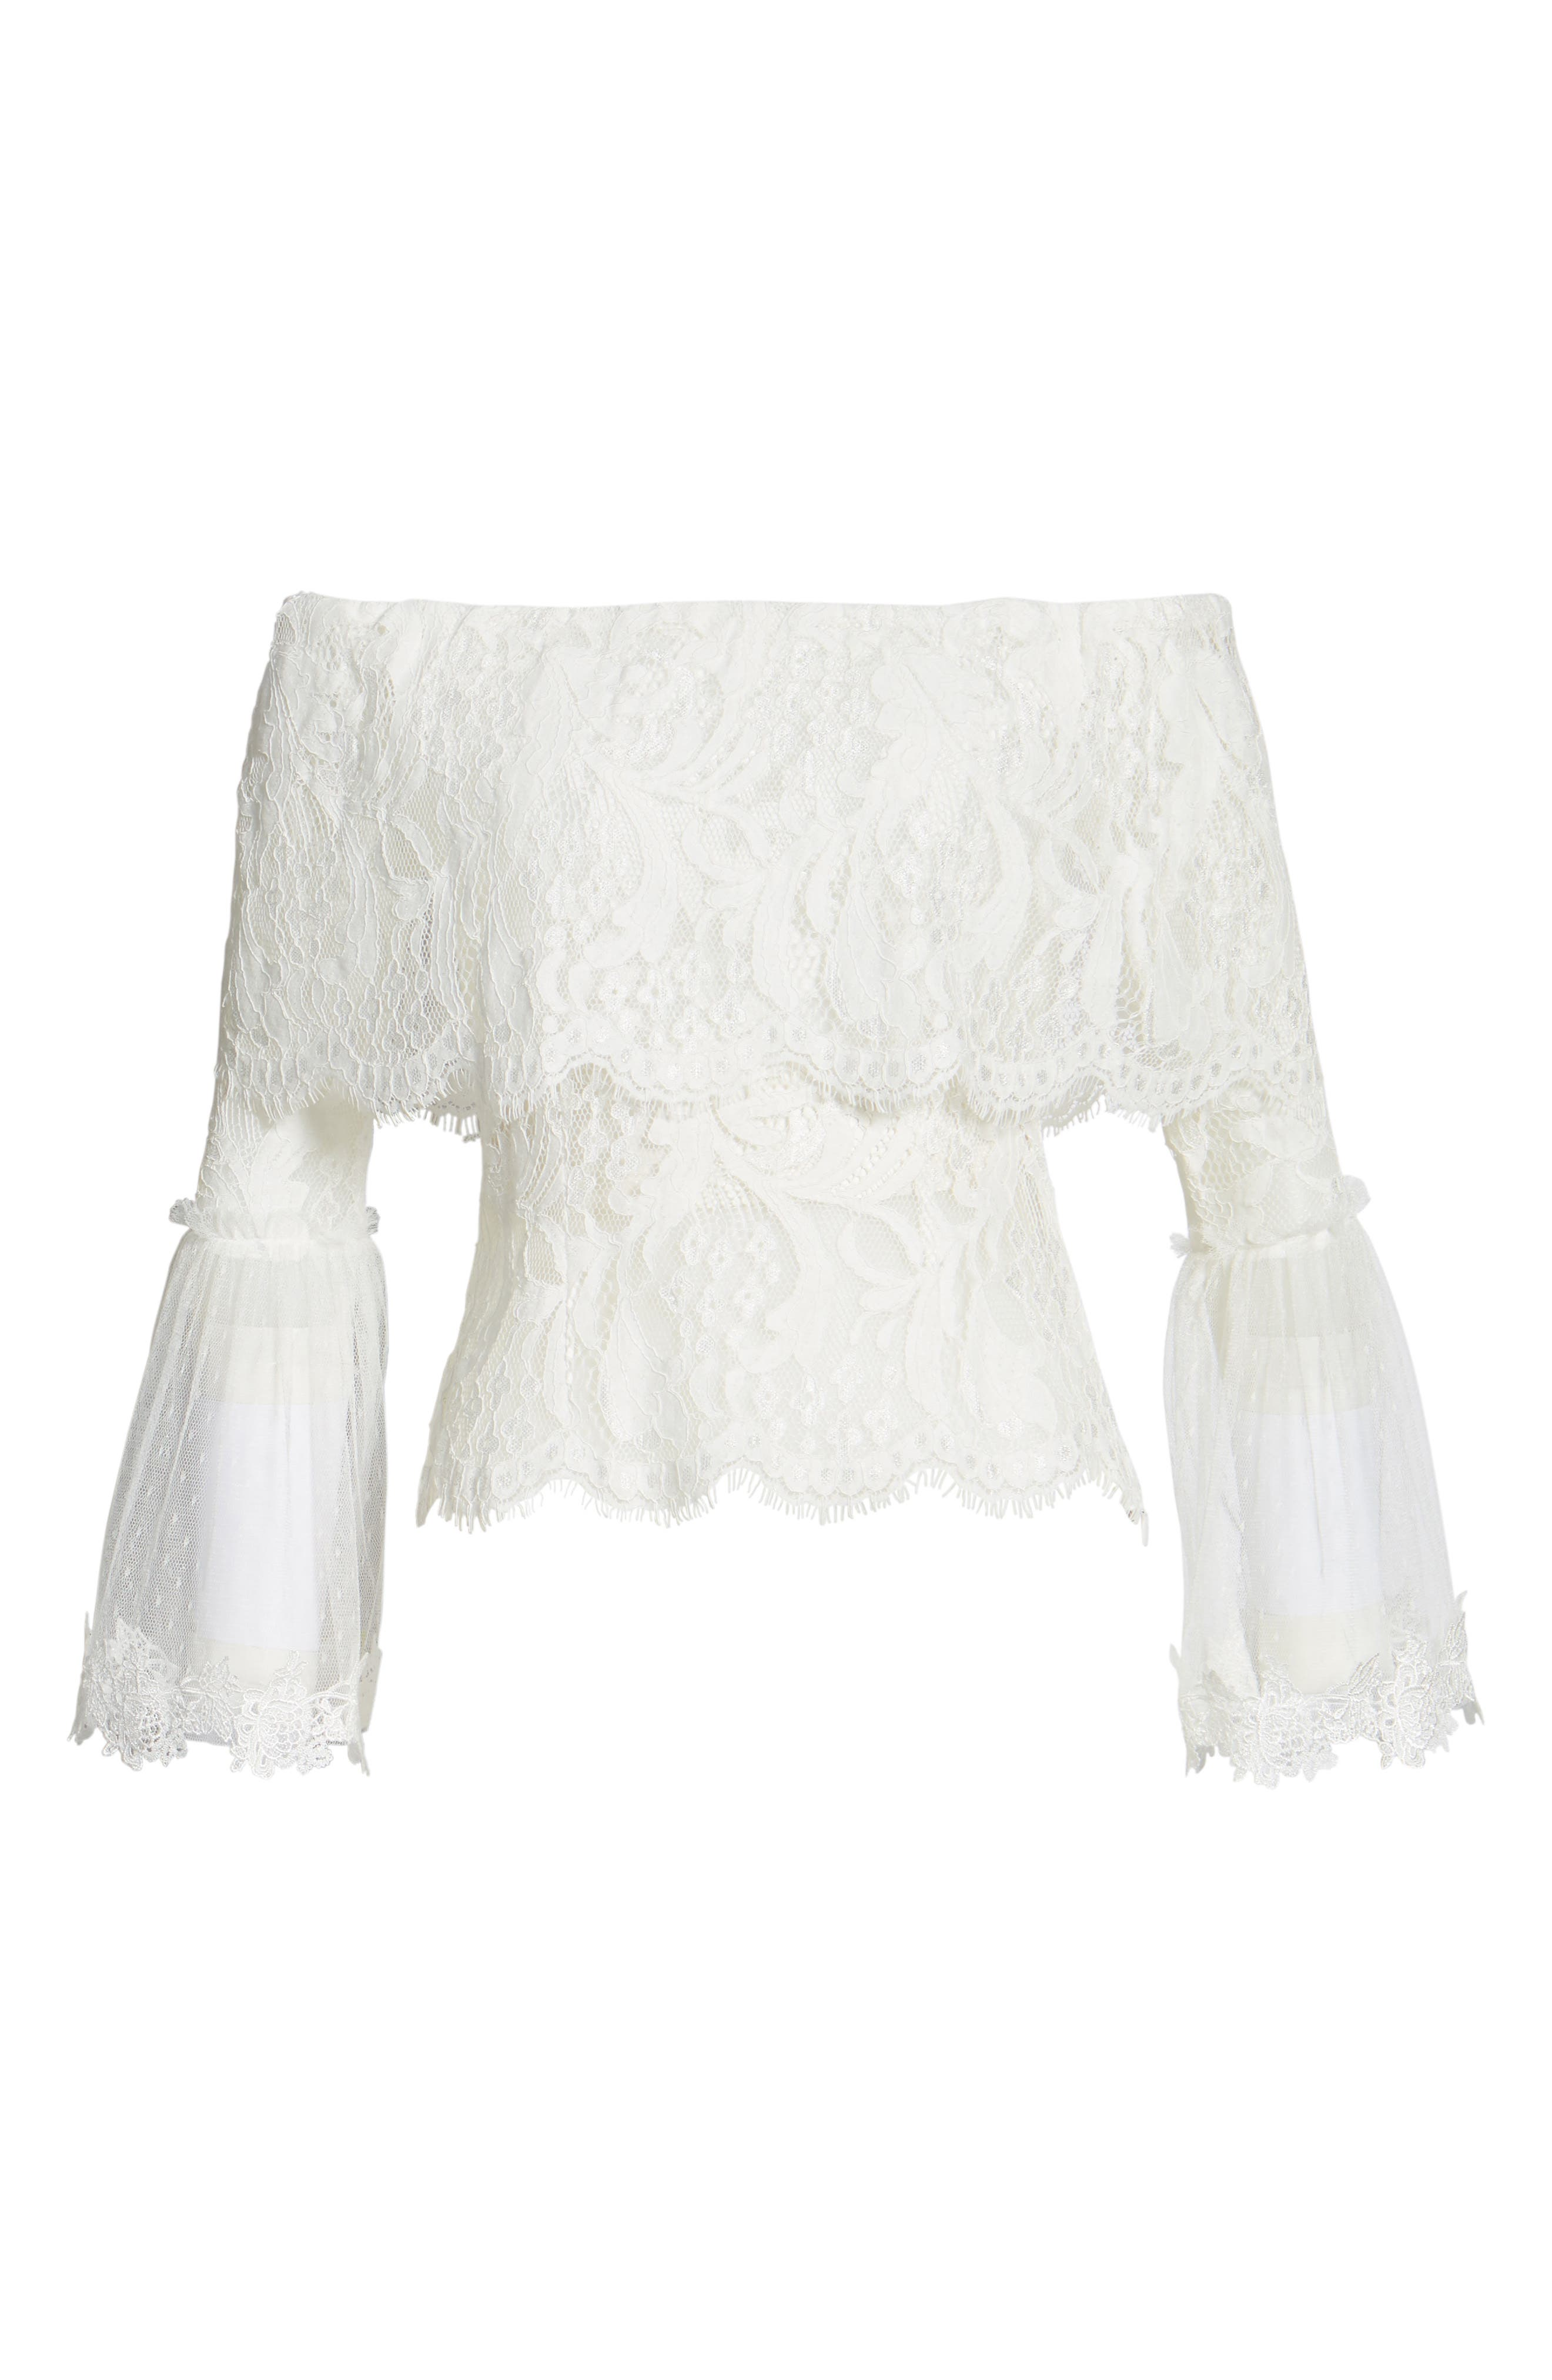 If You Dare Lace Off the Shoulder Blouse,                             Alternate thumbnail 6, color,                             Ivory